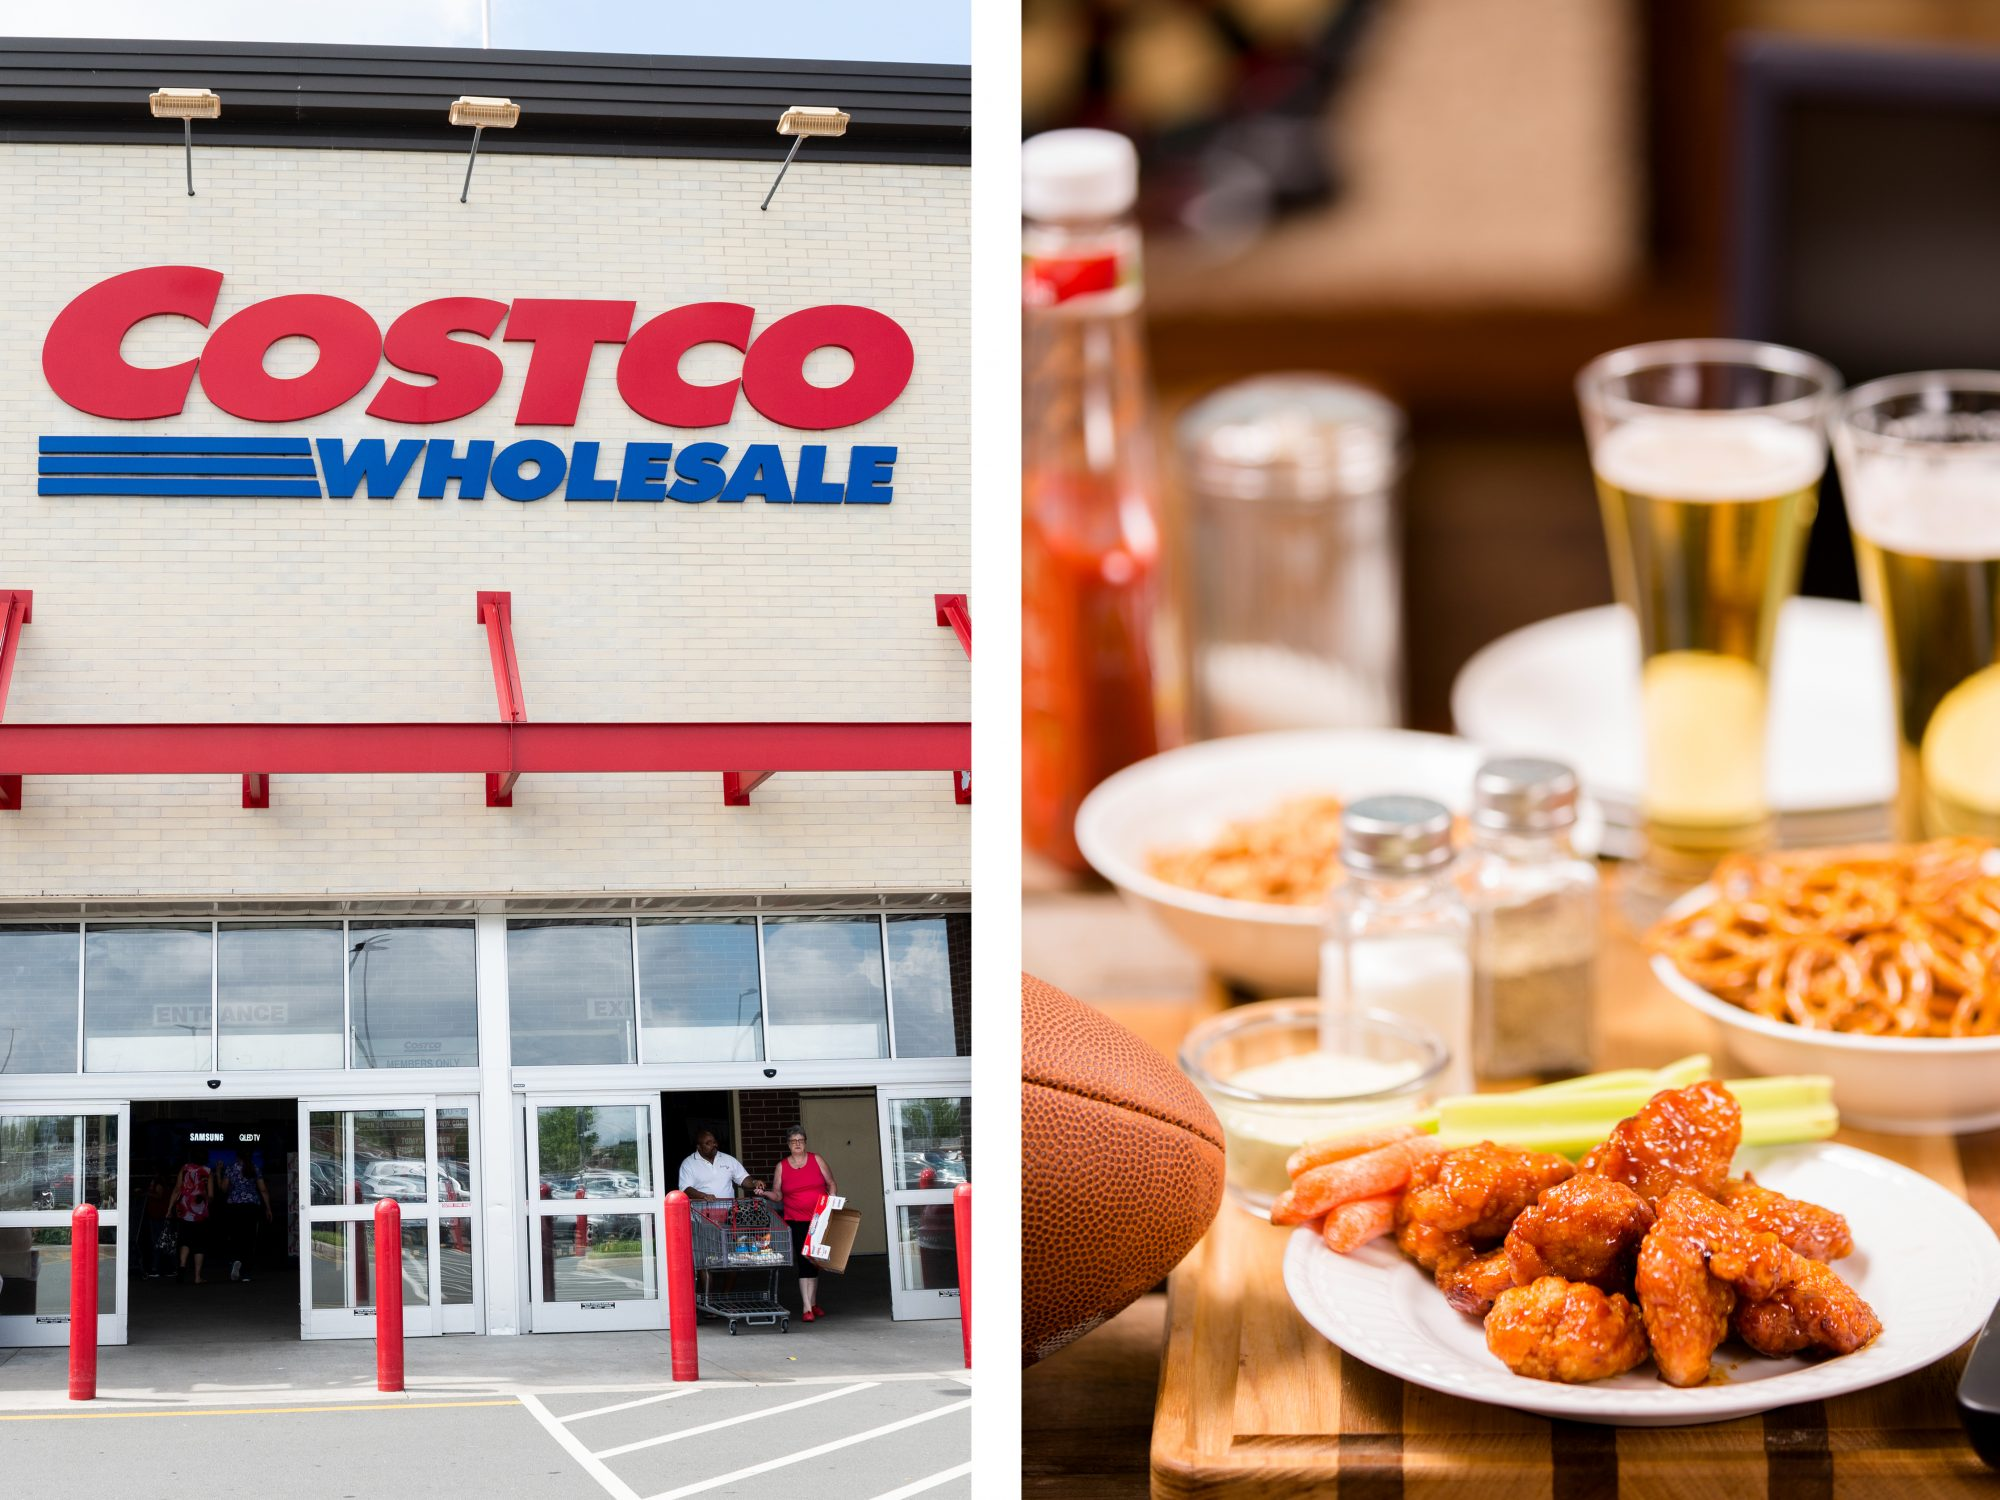 What to buy at Costco for the Super Bowl